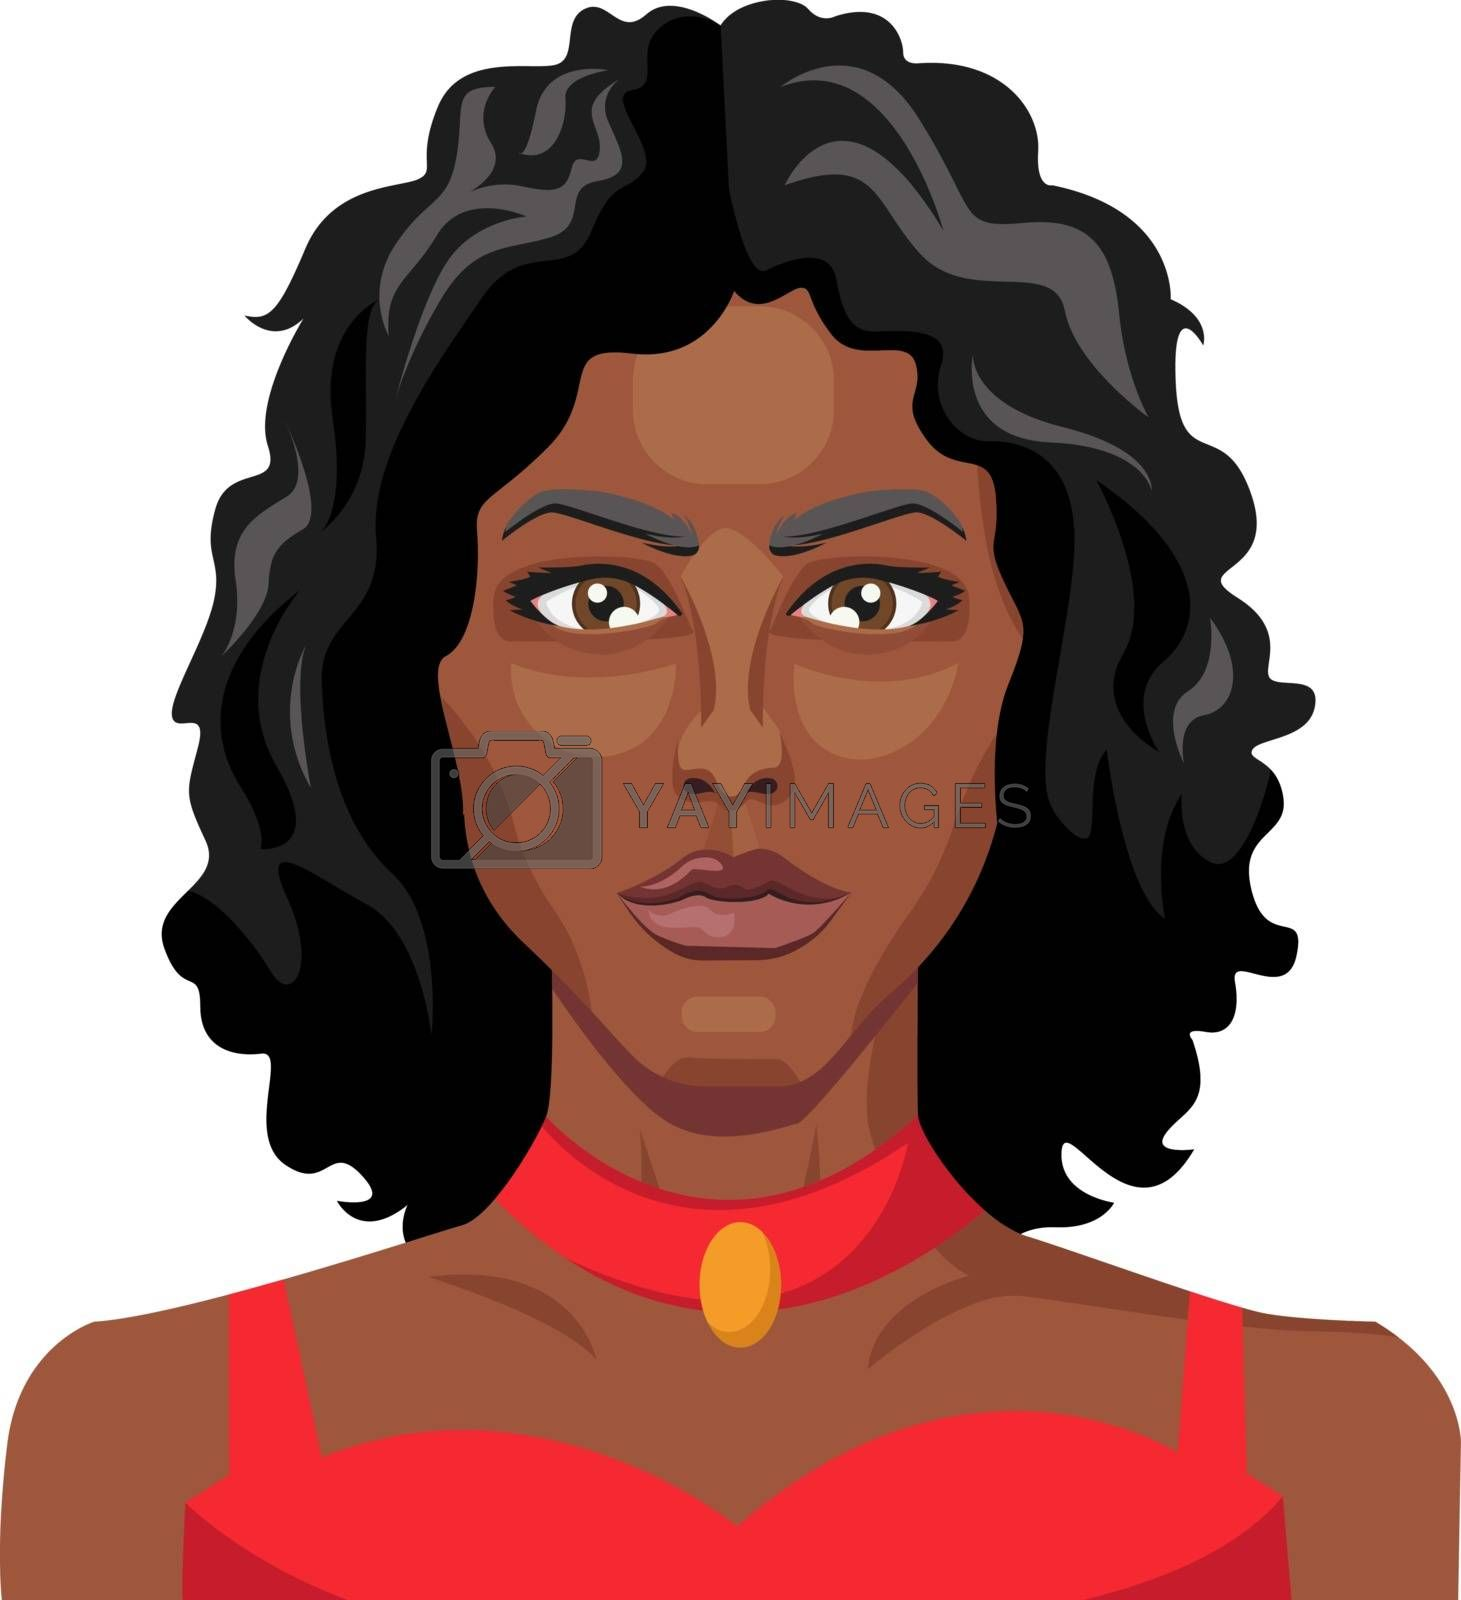 Royalty free image of African girl wearing red dress illustration vector on white back by Morphart